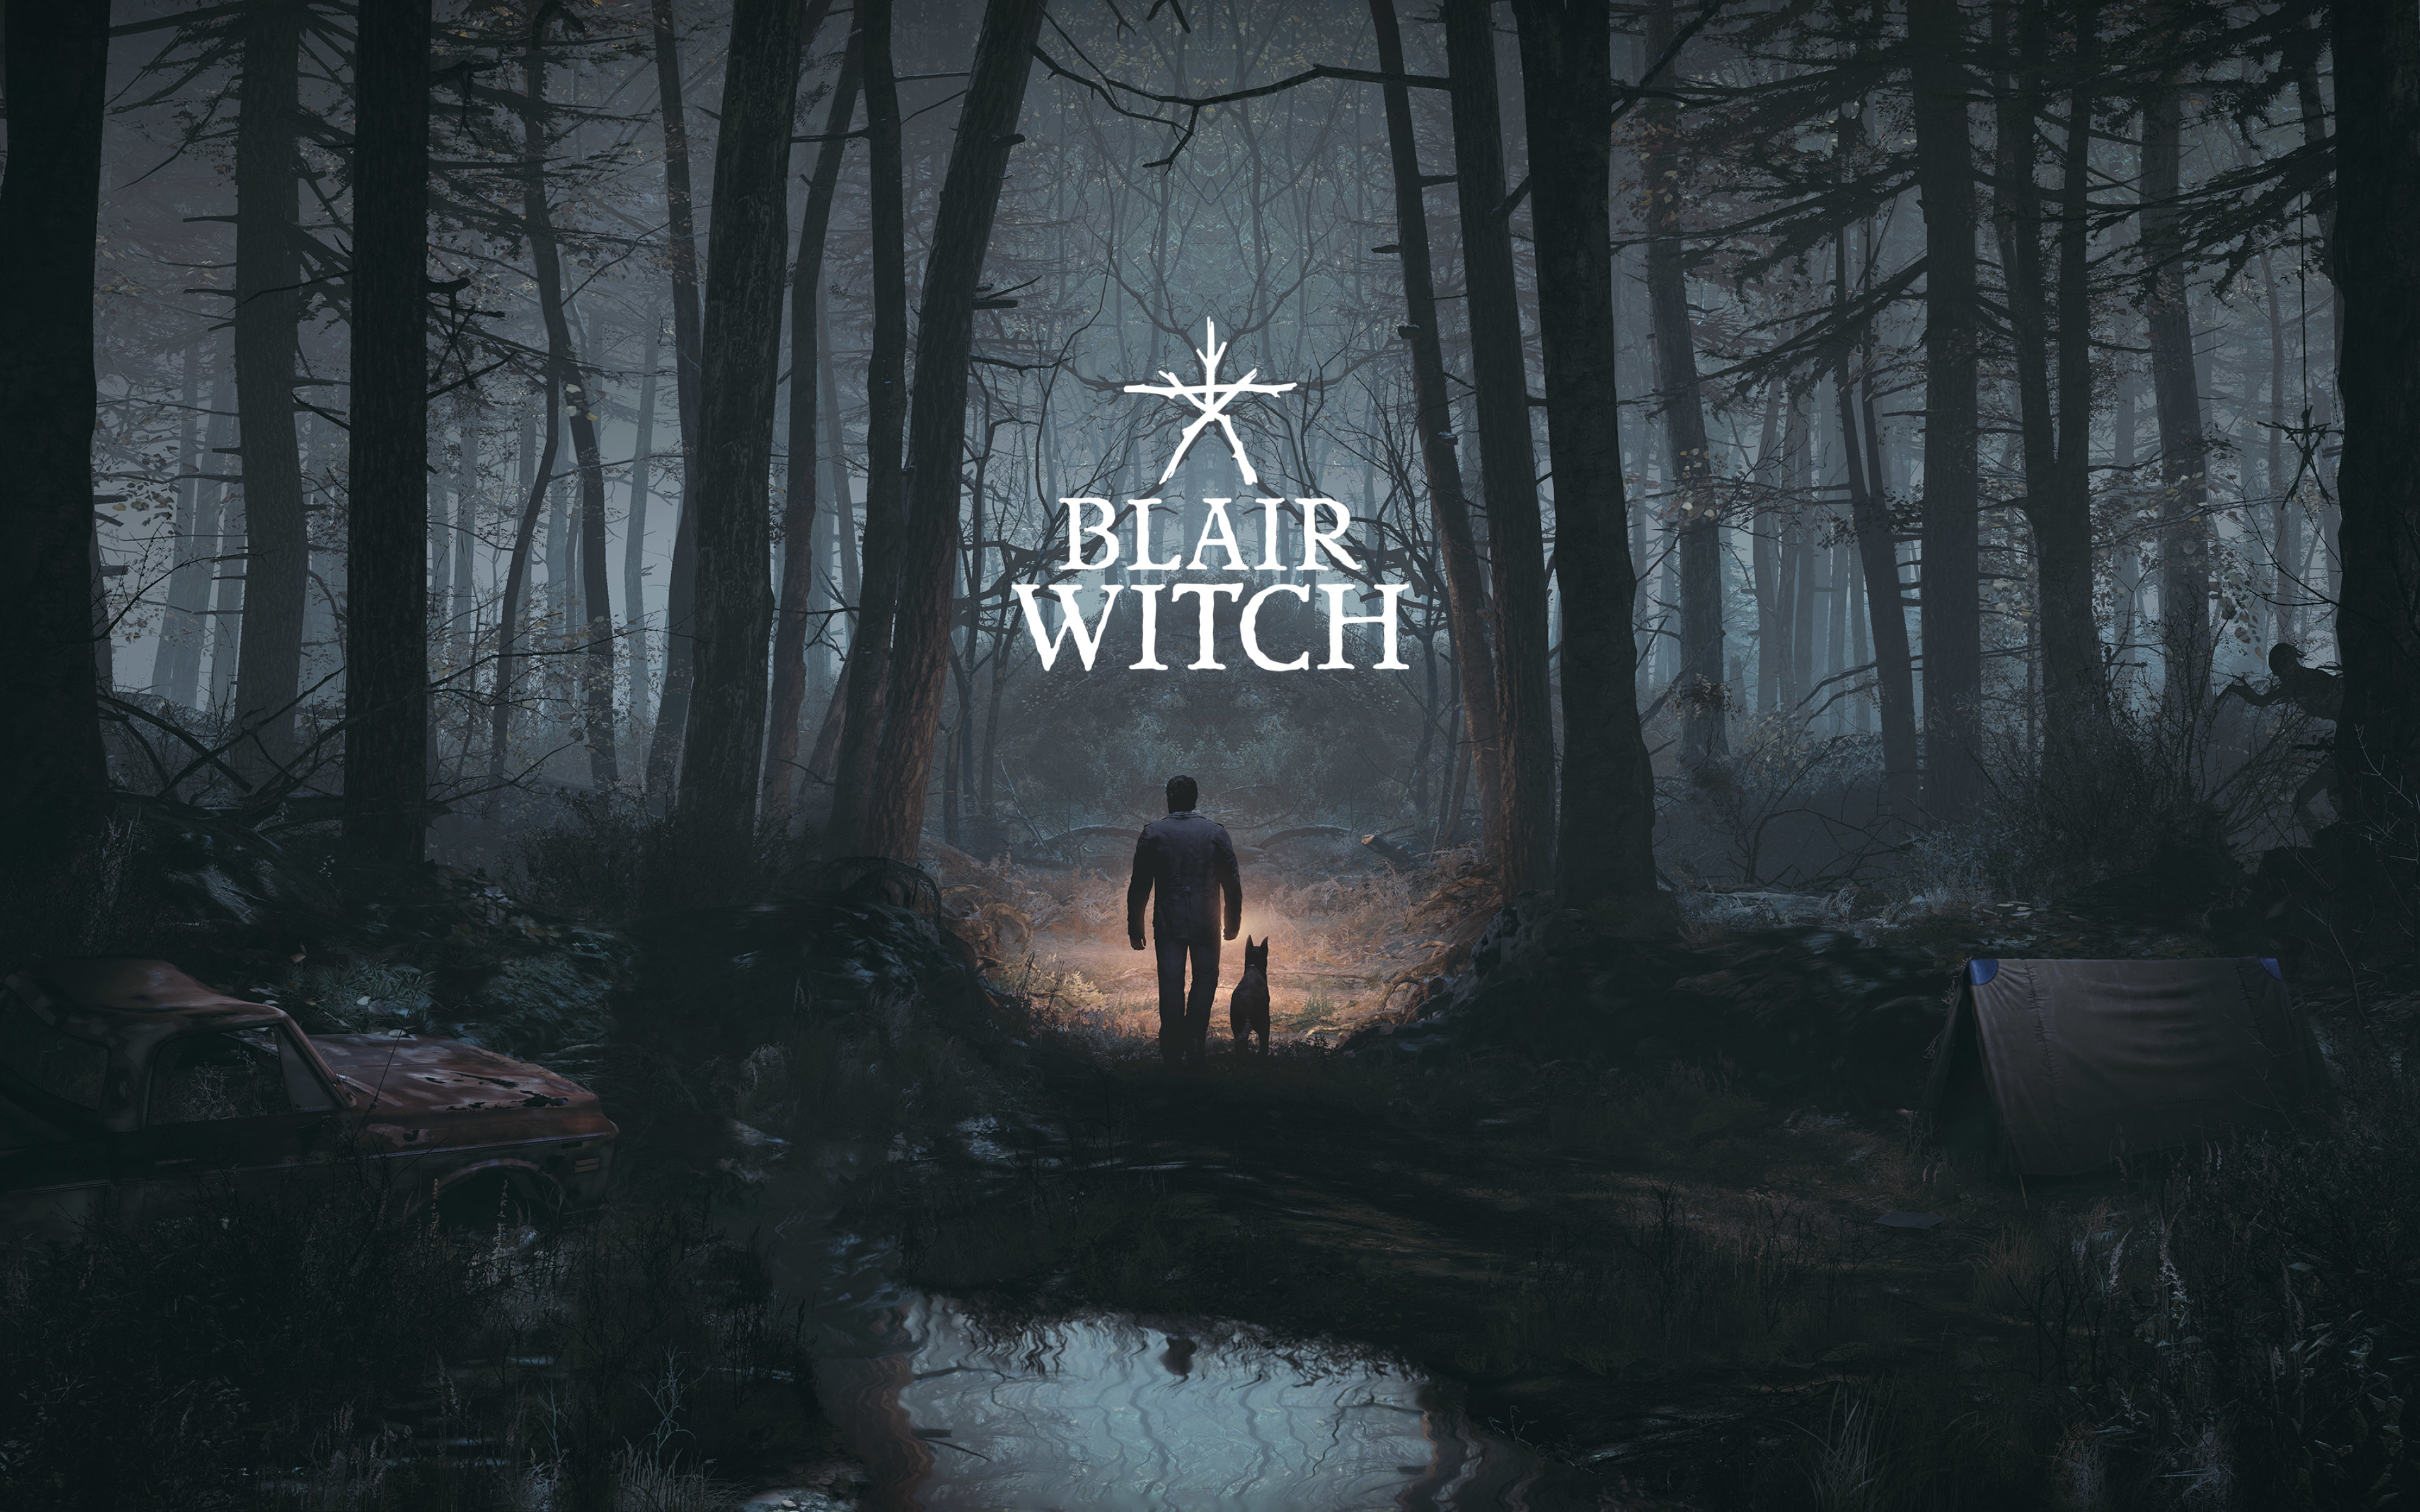 3840x2400 Blair Witch 2019 Game Poster 4k 3840x2400